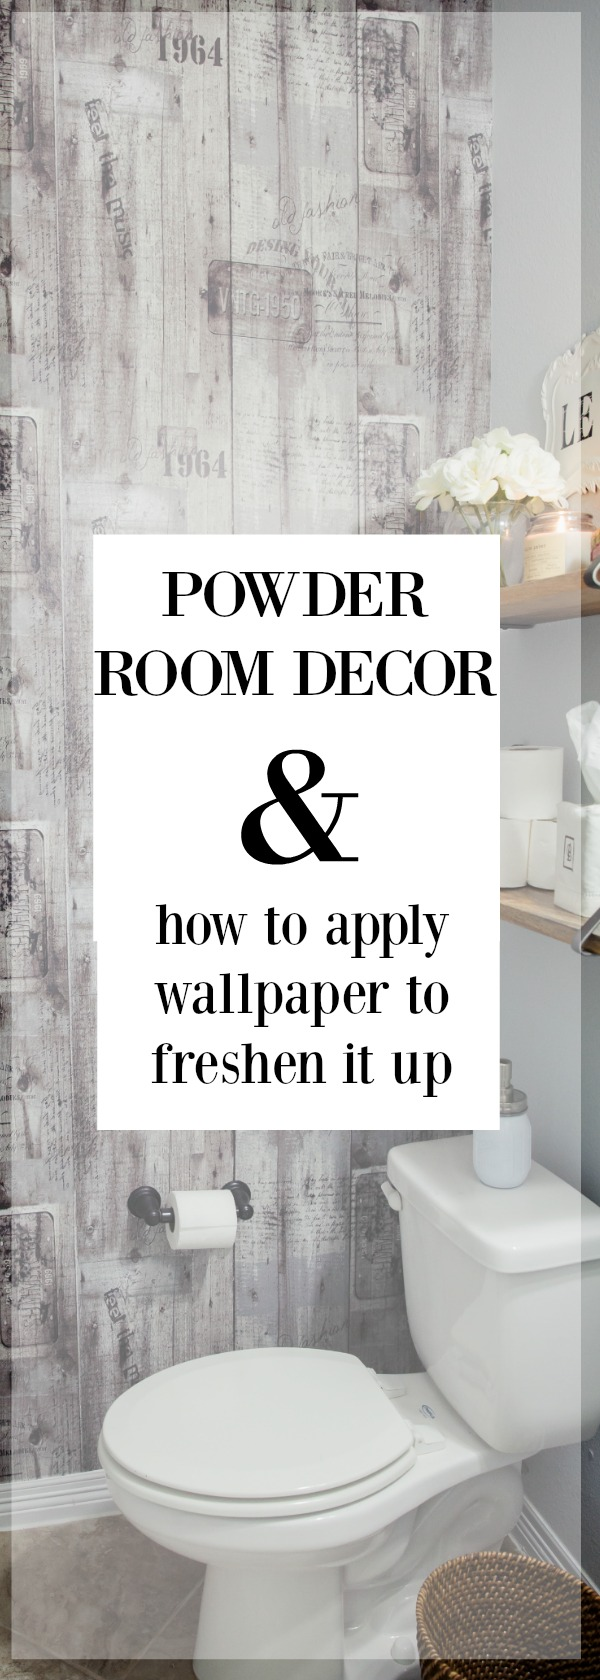 Powder Room Decor | Powder room ideas | Wallpaper Ideas | Uptown with Elly Brown